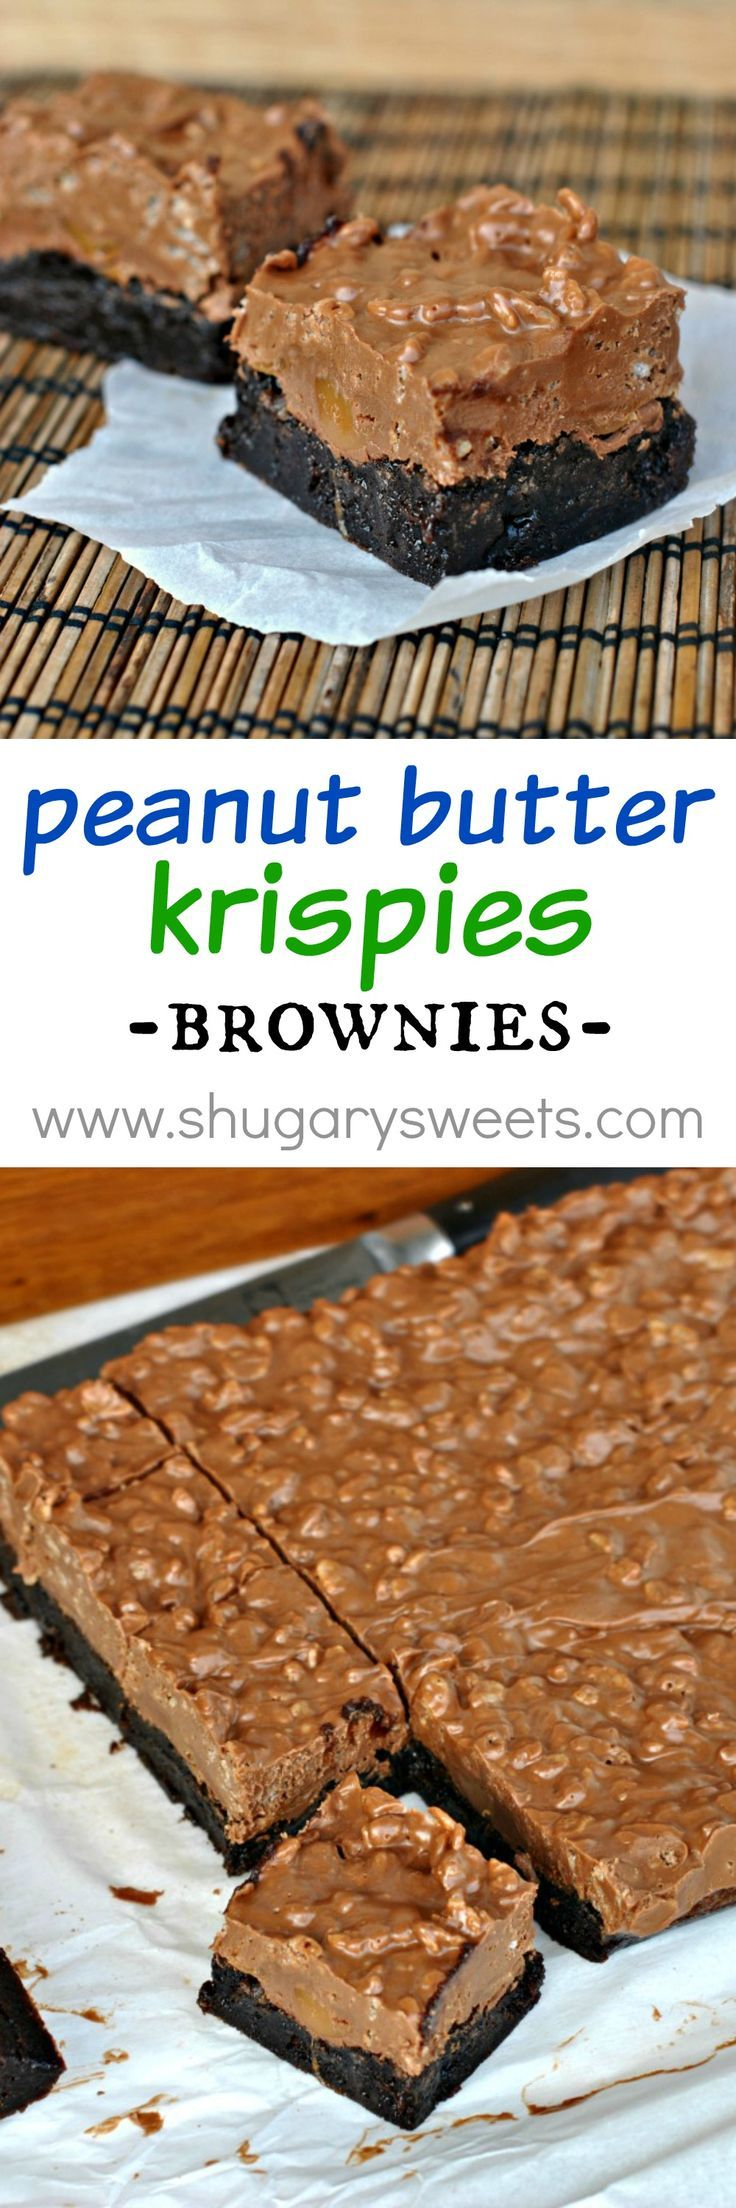 Peanut Butter Krispies Layered Brownies (Chocolate Peanut Butter Cheesecake)